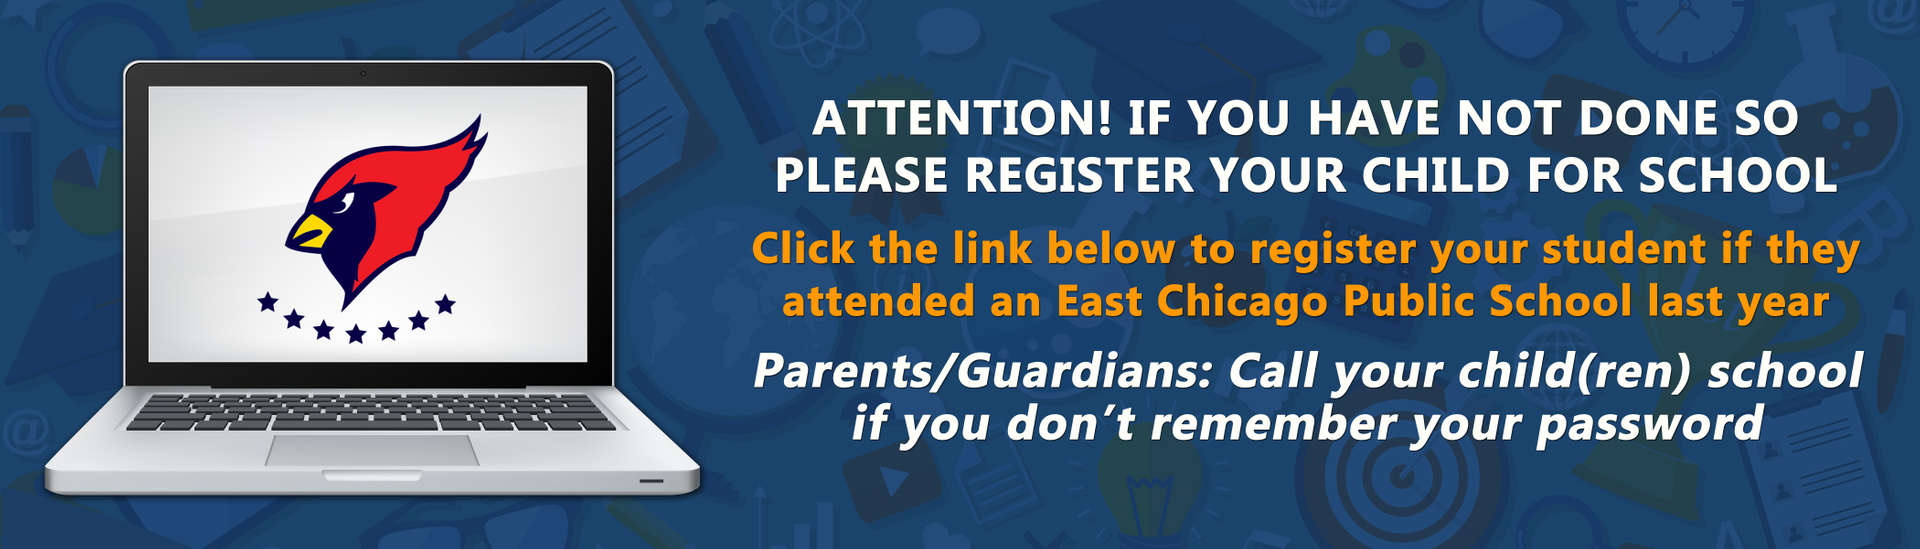 Please Register you child if you have not done so